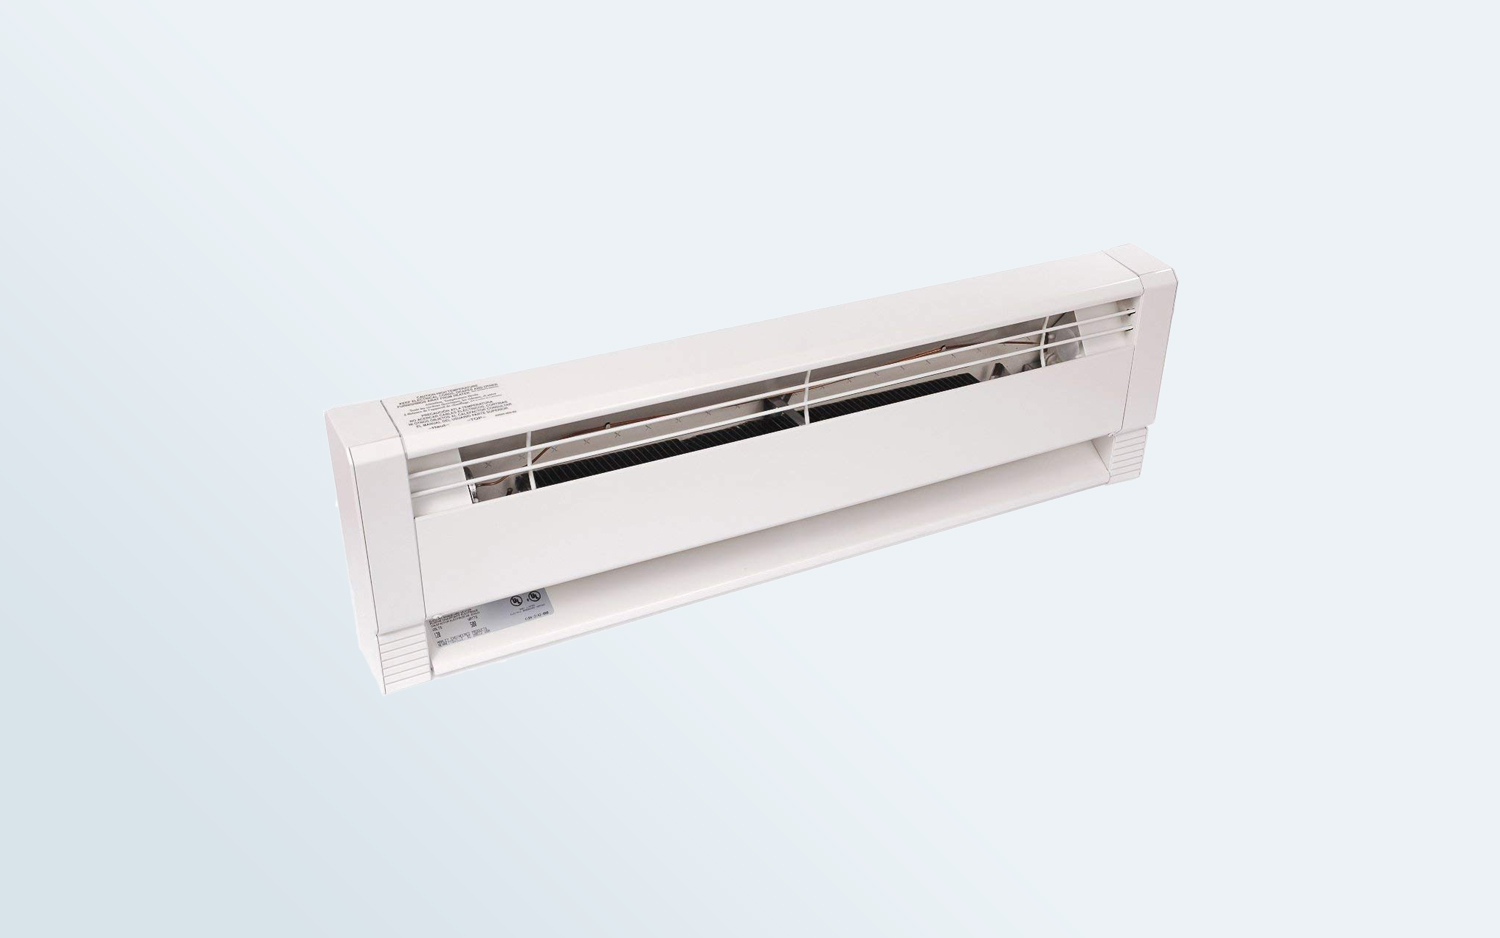 Best Baseboard Heaters 2019 - Electric, Hydronic Baseboard ... on